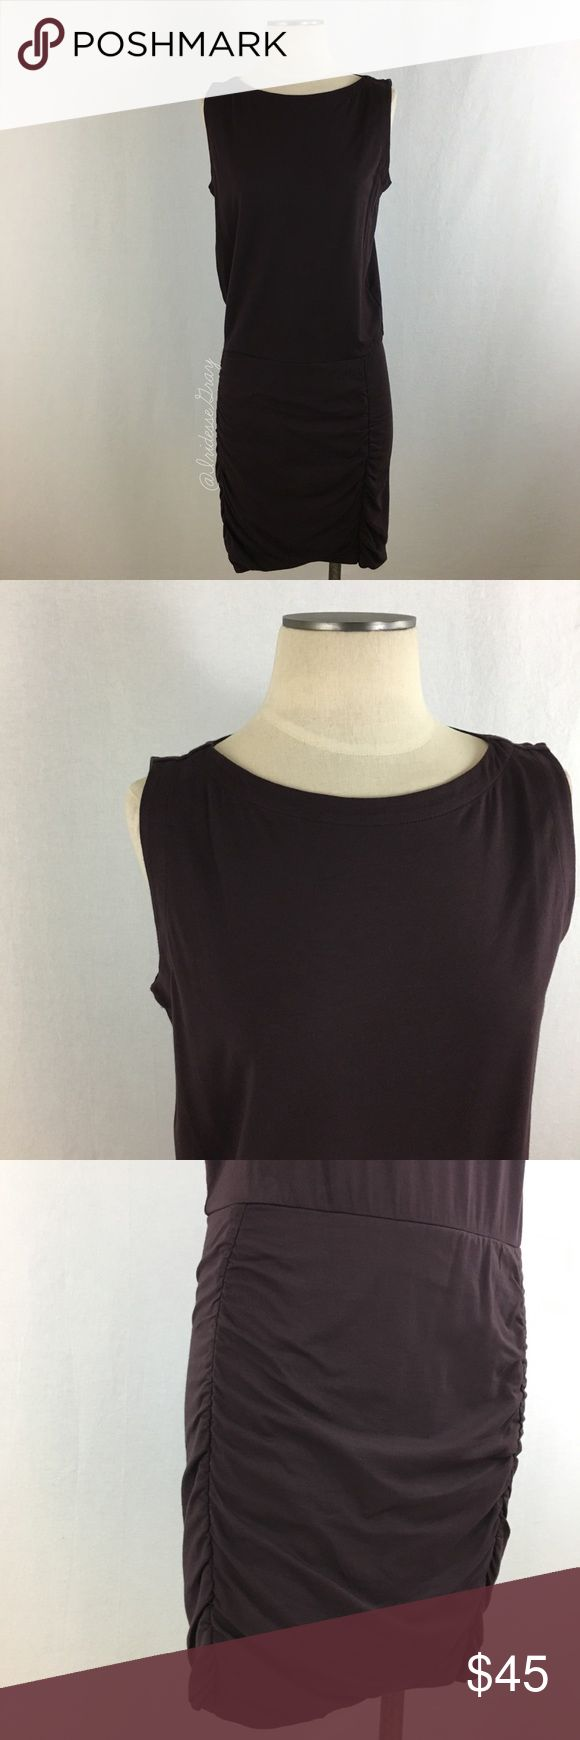 """Athleta- Plum Sleeveless Ruched Dress Size Medium Athleta- Plum Sleeveless Ruched Dress Size Medium. Made of 56% Cotton, 38% Modal, and 6% Spandex. Drop waist style. Skirt portion is tucked on both sides and there's a subtle tulip in the front. Excellent quality, like new. Shoulder-bottom measures about 39"""" in length. From shoulder-skirt seam (torso) measures about 21"""" Long (Skirt part is 18"""" Long). Armpit-armpit measures 19"""" across laid flat. Also available in Black Size Medium. (D) Athleta…"""